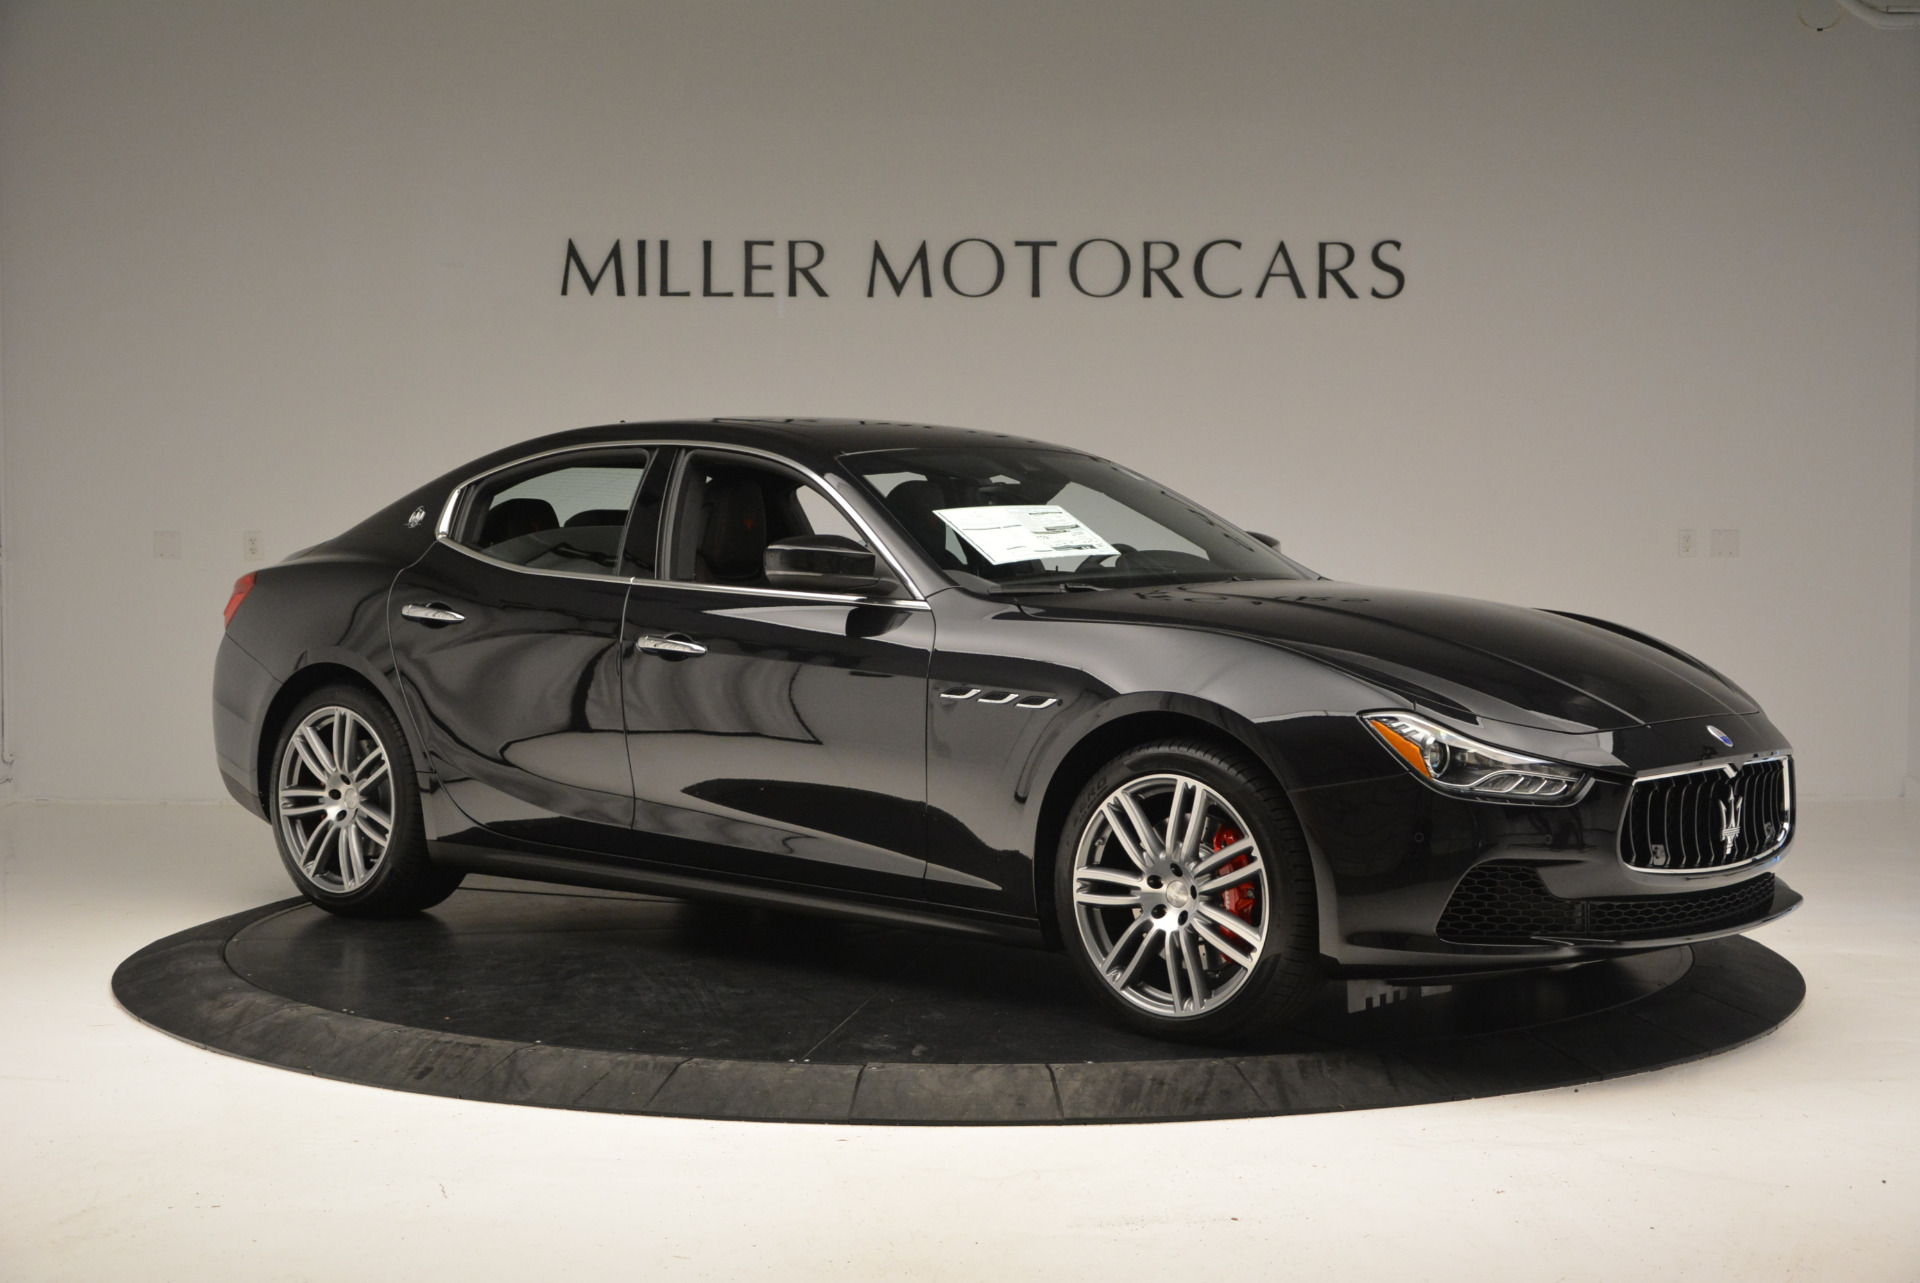 New 2017 Maserati Ghibli S Q4 For Sale In Greenwich, CT 605_p10